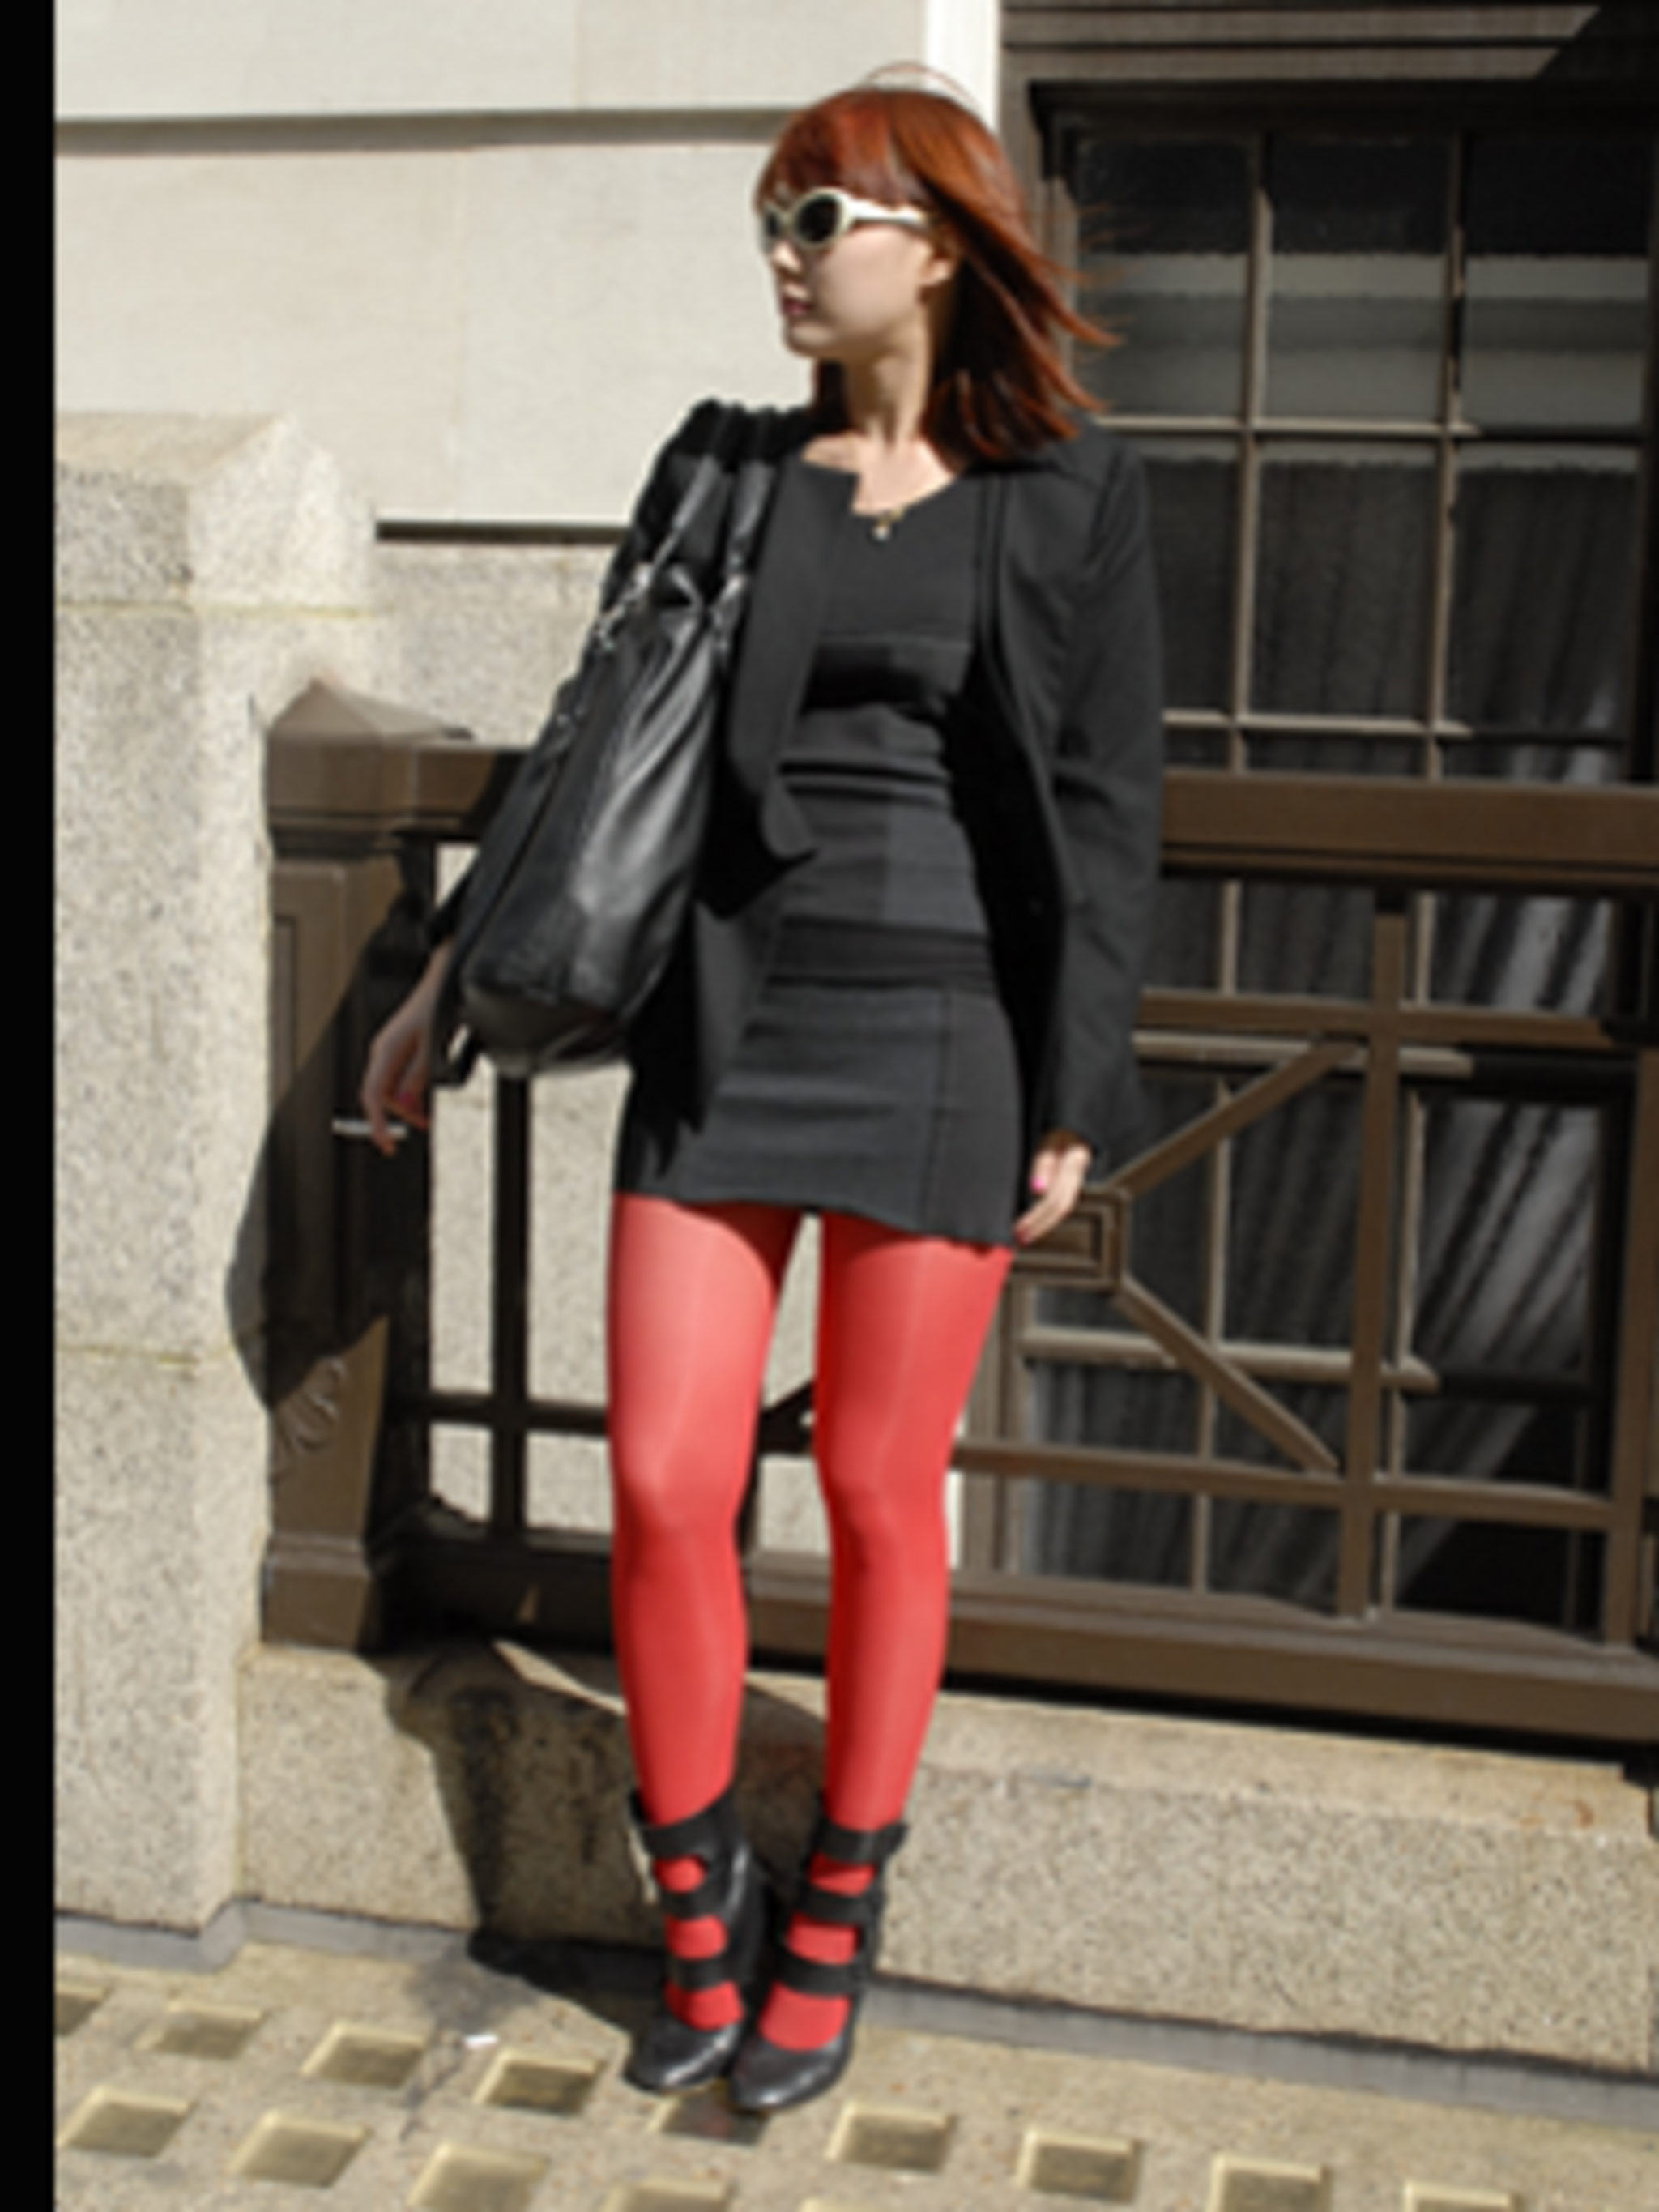 <p>A chic black outfit is given a kooky edge with bright red tights and matching hair. The Eley Kishimoto fetish-esque shoes add sex appeal.</p>